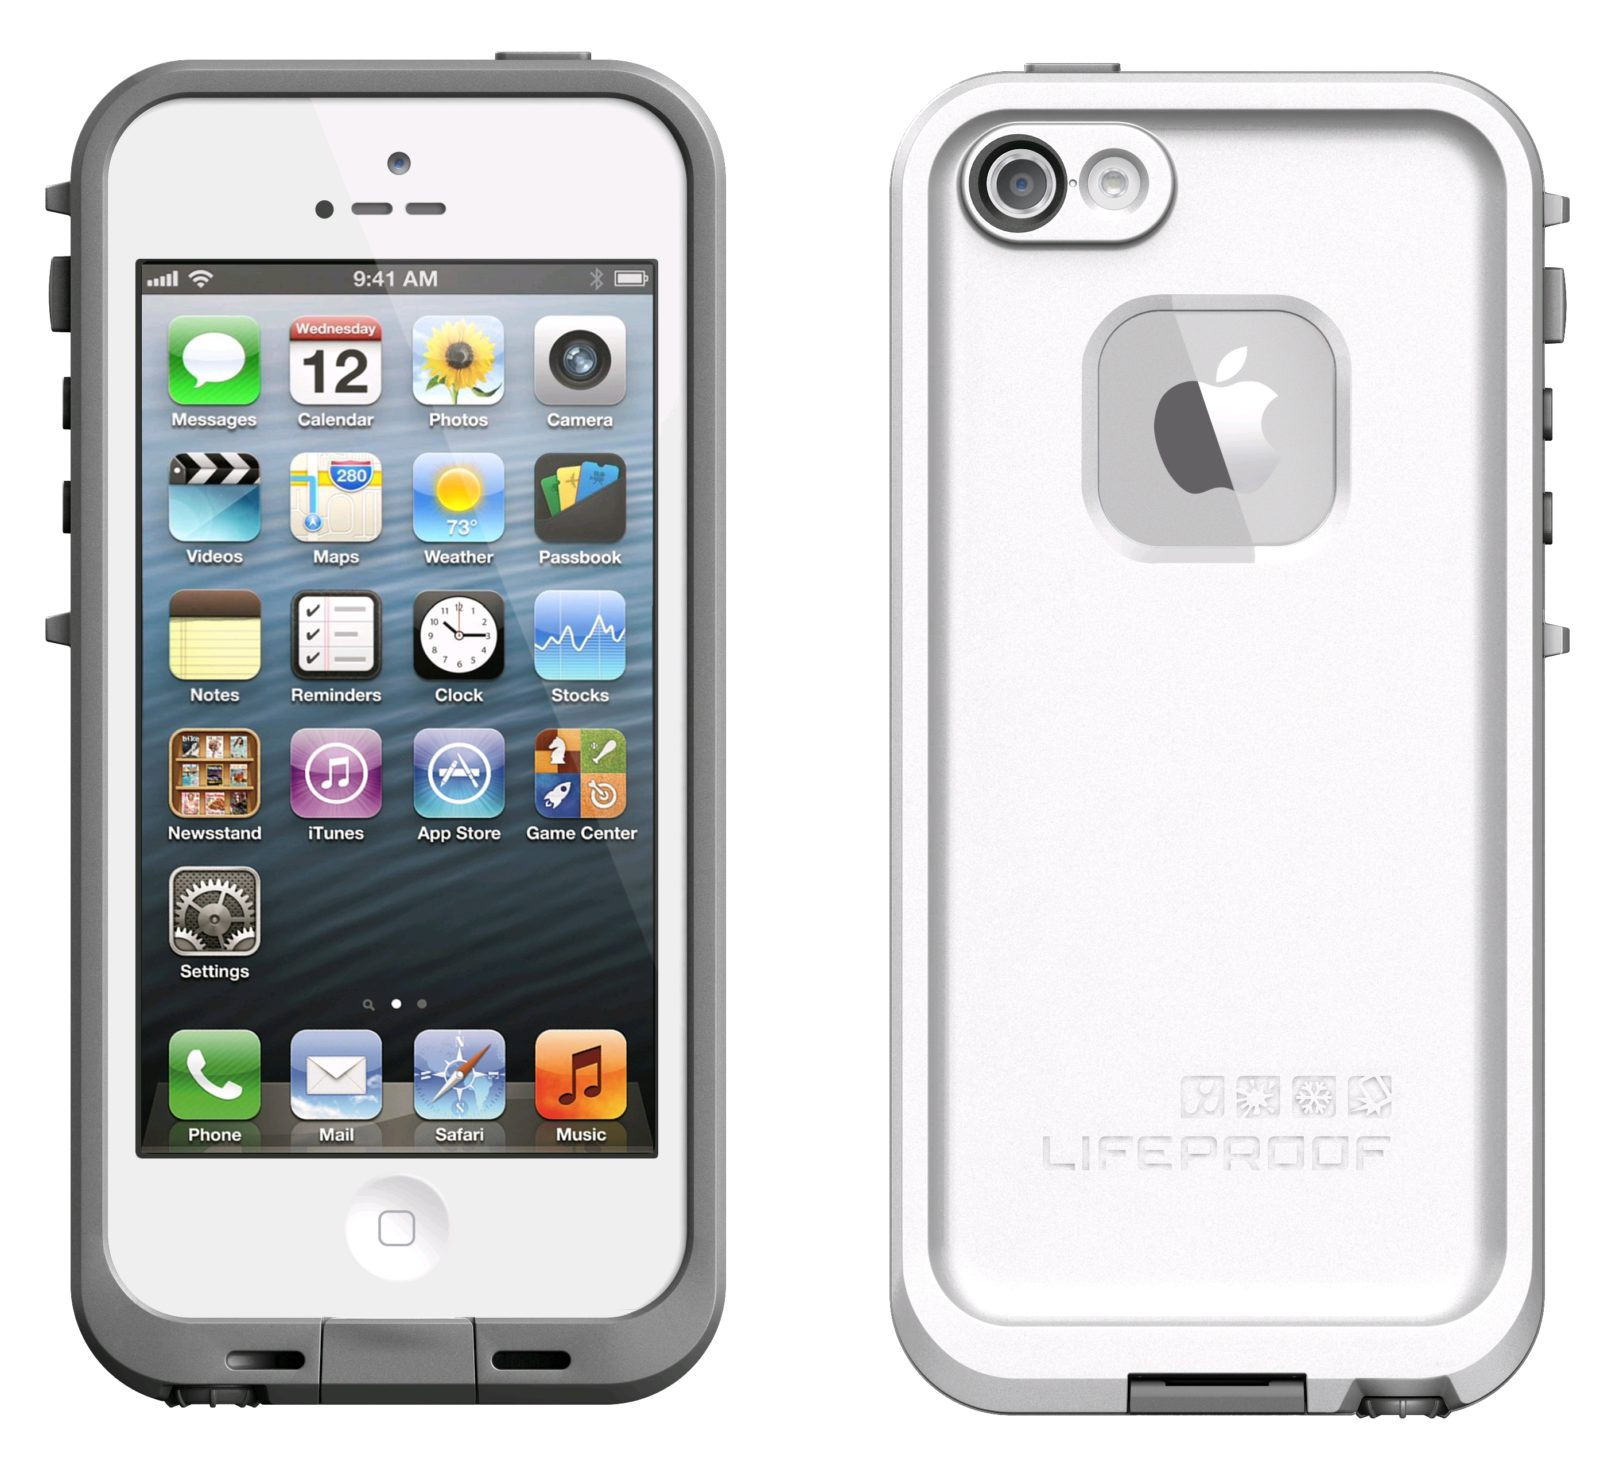 Case Lifeproof untuk iPhone 5. Image by expansys.com